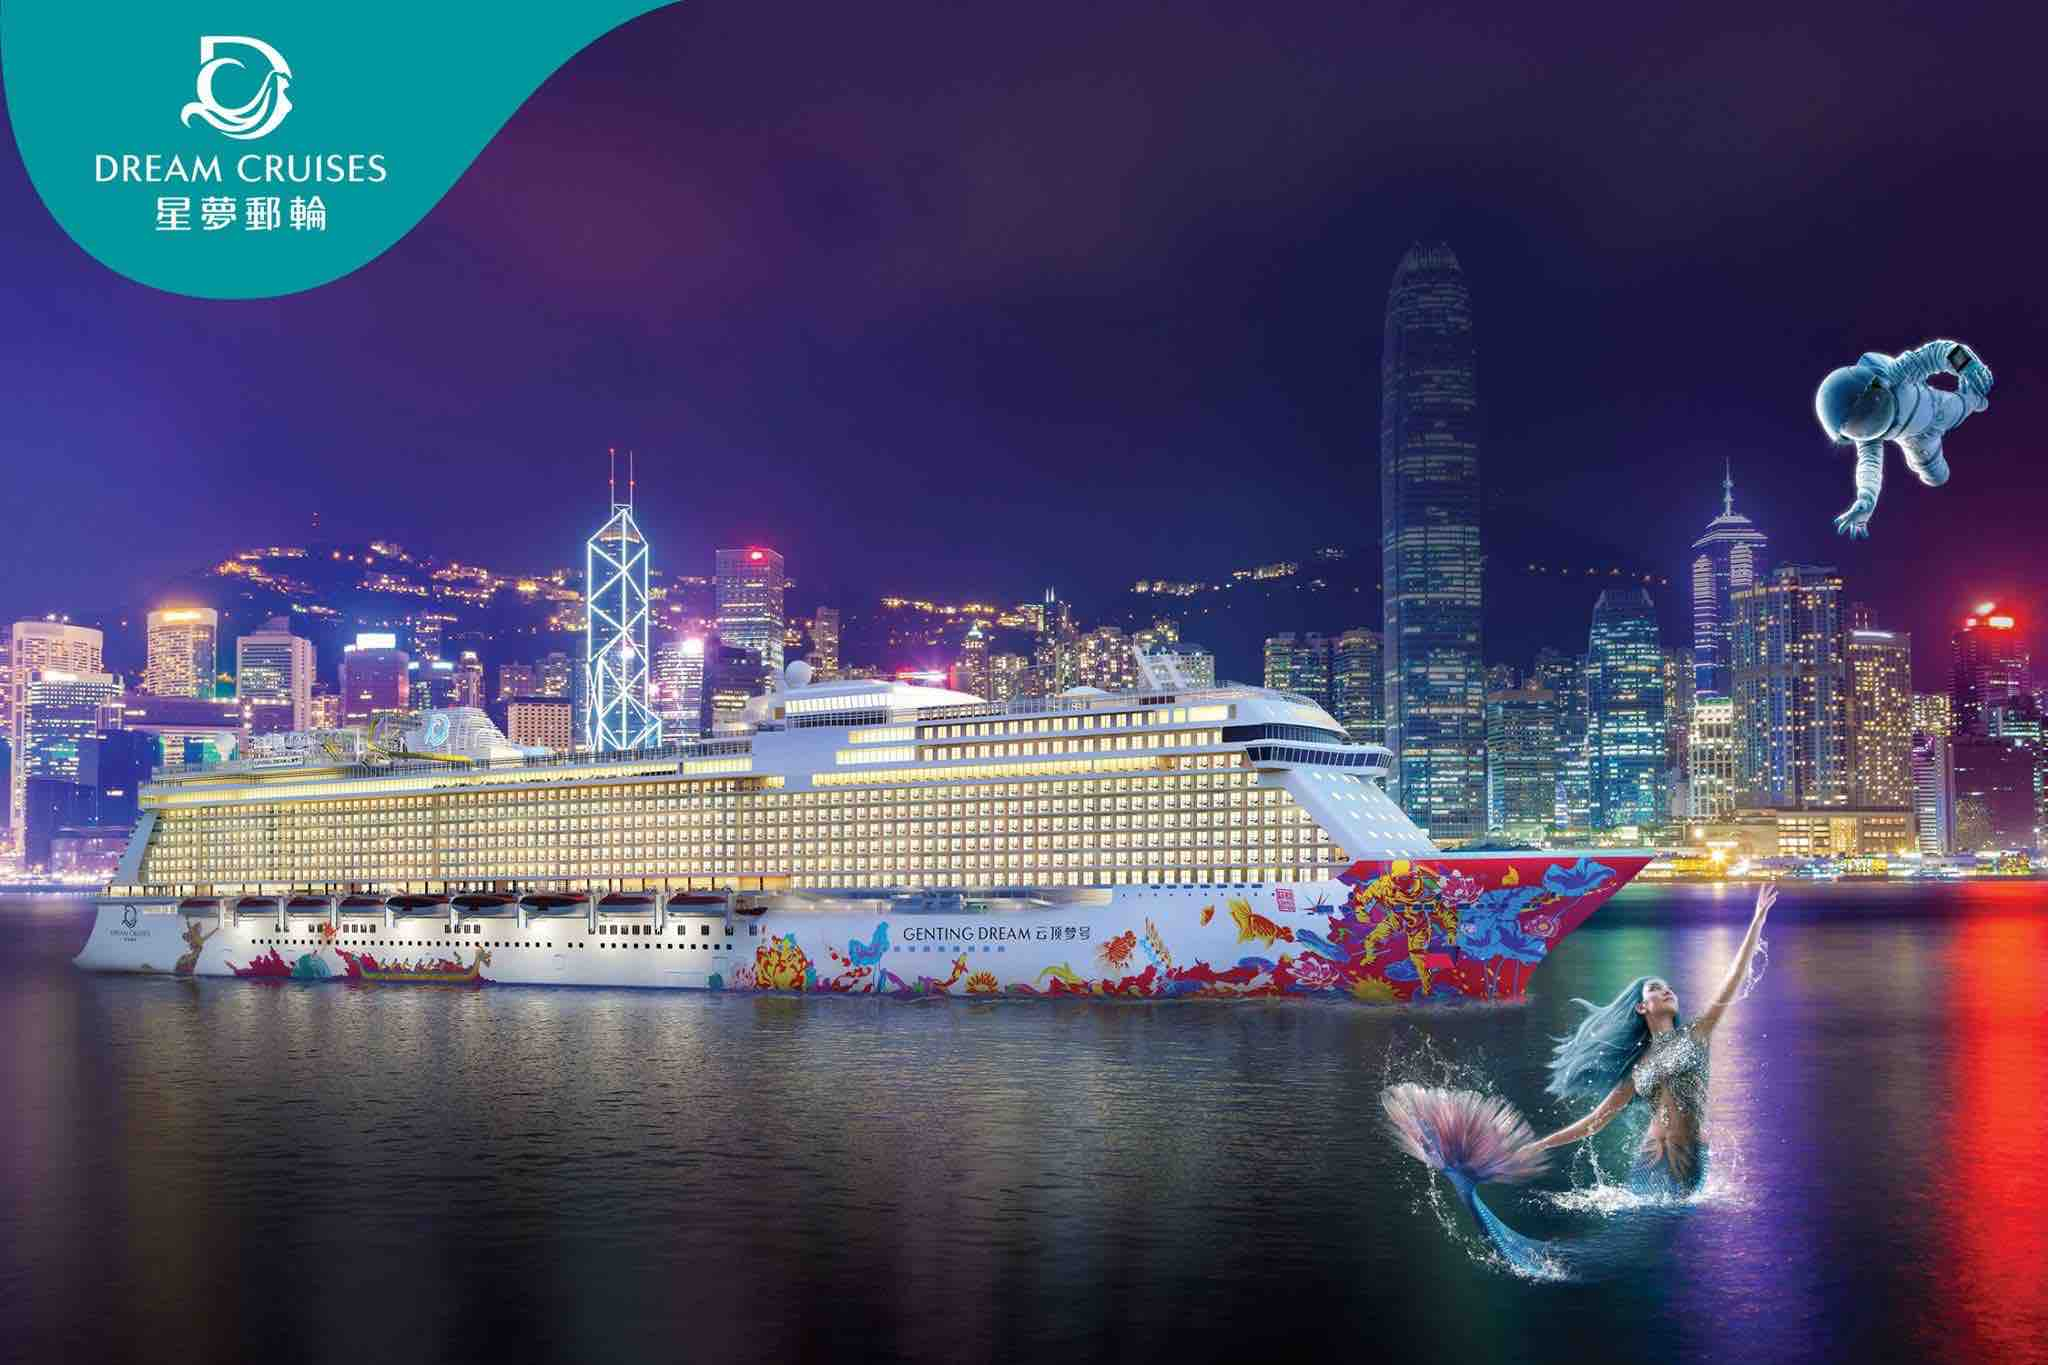 Dream Cruises Is All Ready To Bring Your Dreams To Live